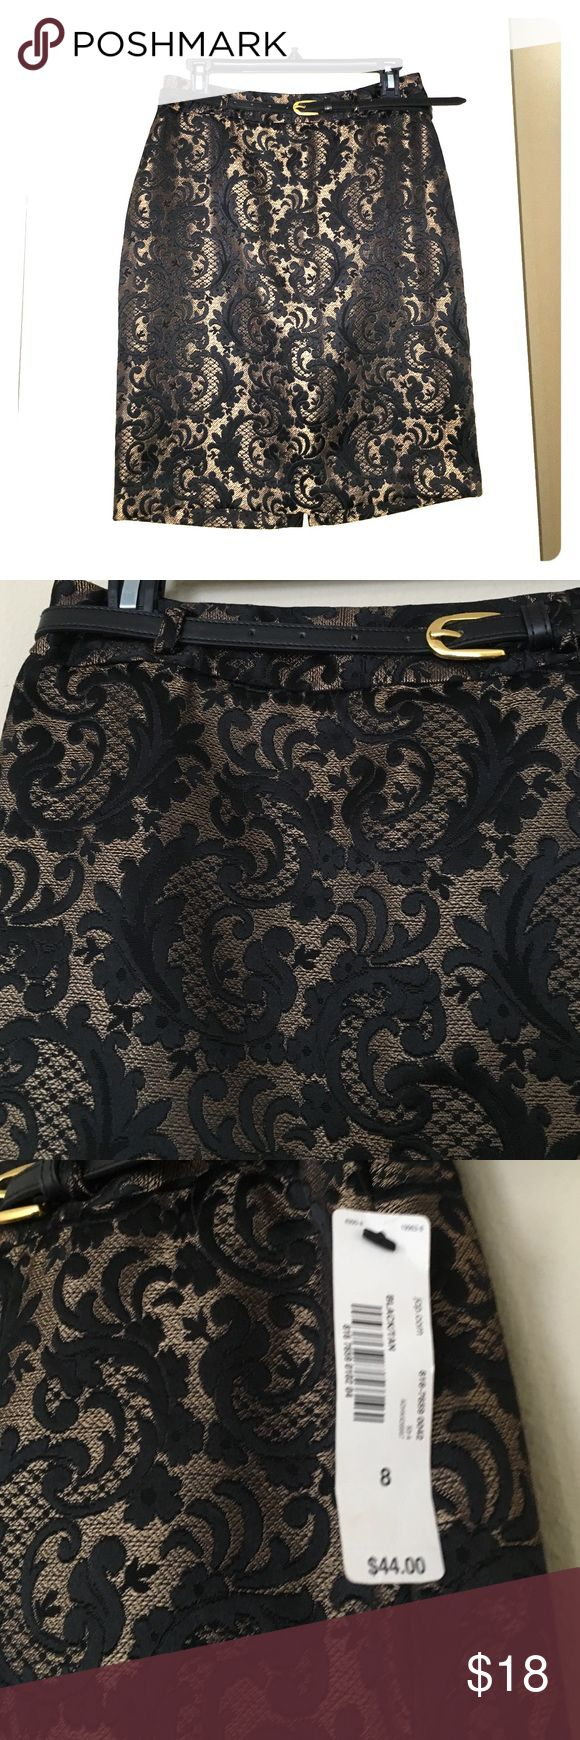 NWT Black/Gold brocade pencil skirt w/Belt Perfect for work, going out, or holiday parties! NWT Never Worn brocade skirt with w black and gold belt included! Modest Slit in back makes it transition from day to night perfectly! Worthington Skirts